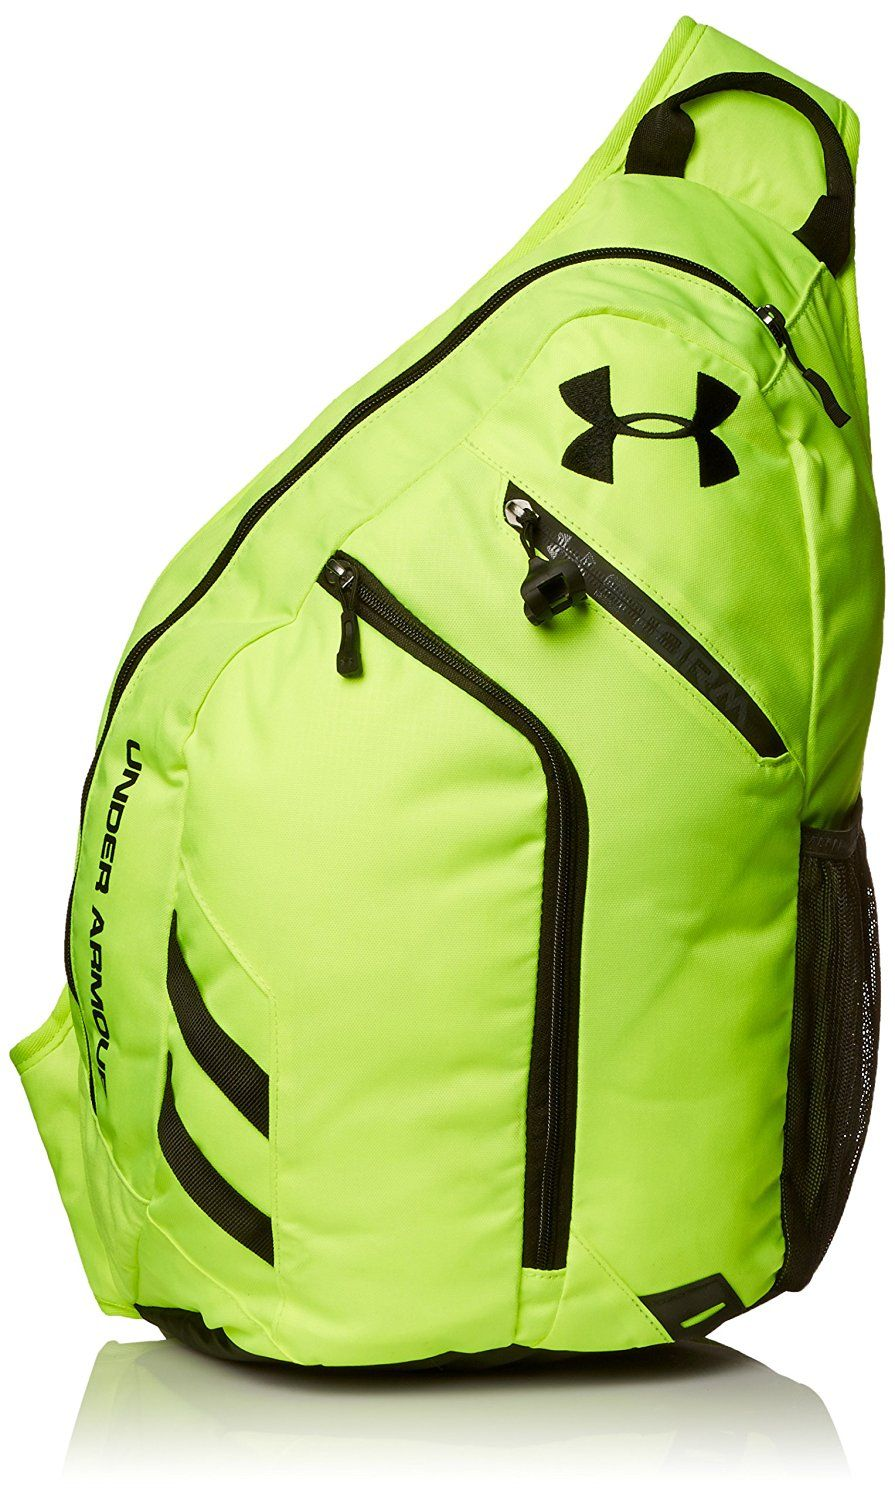 abeeab9b4c Under Armour Compel Sling Backpack   Additional details at the pin image